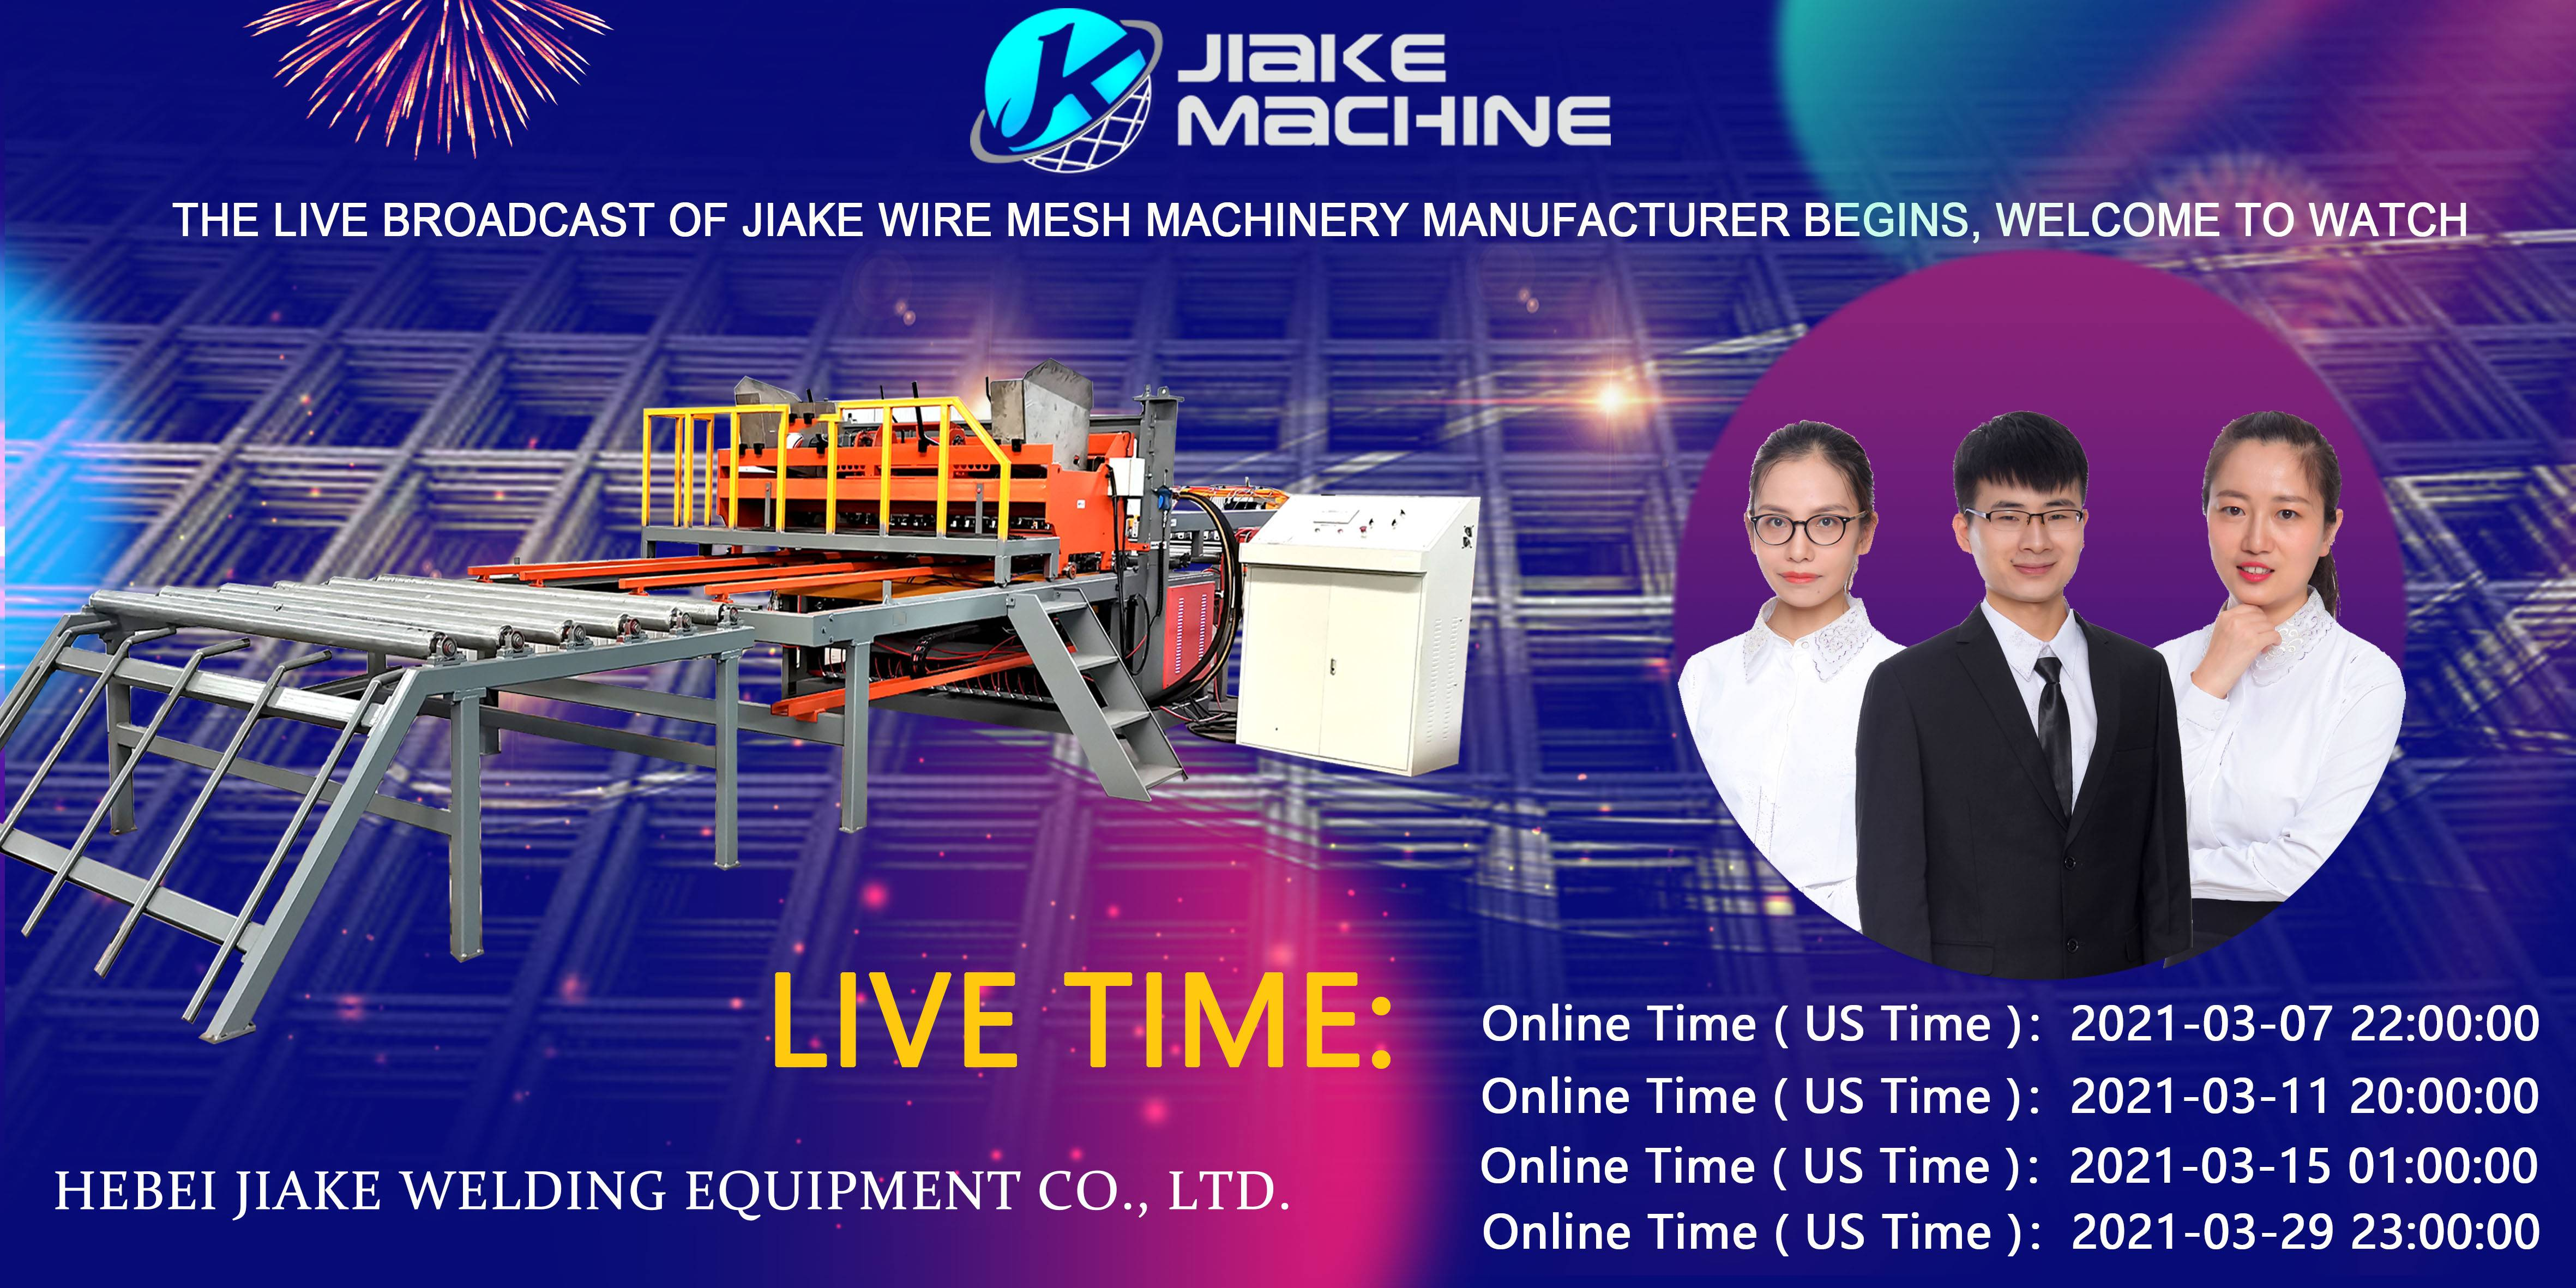 The live broadcast of Jiake Wire Mesh Machinery is coming in March,welcome to watch